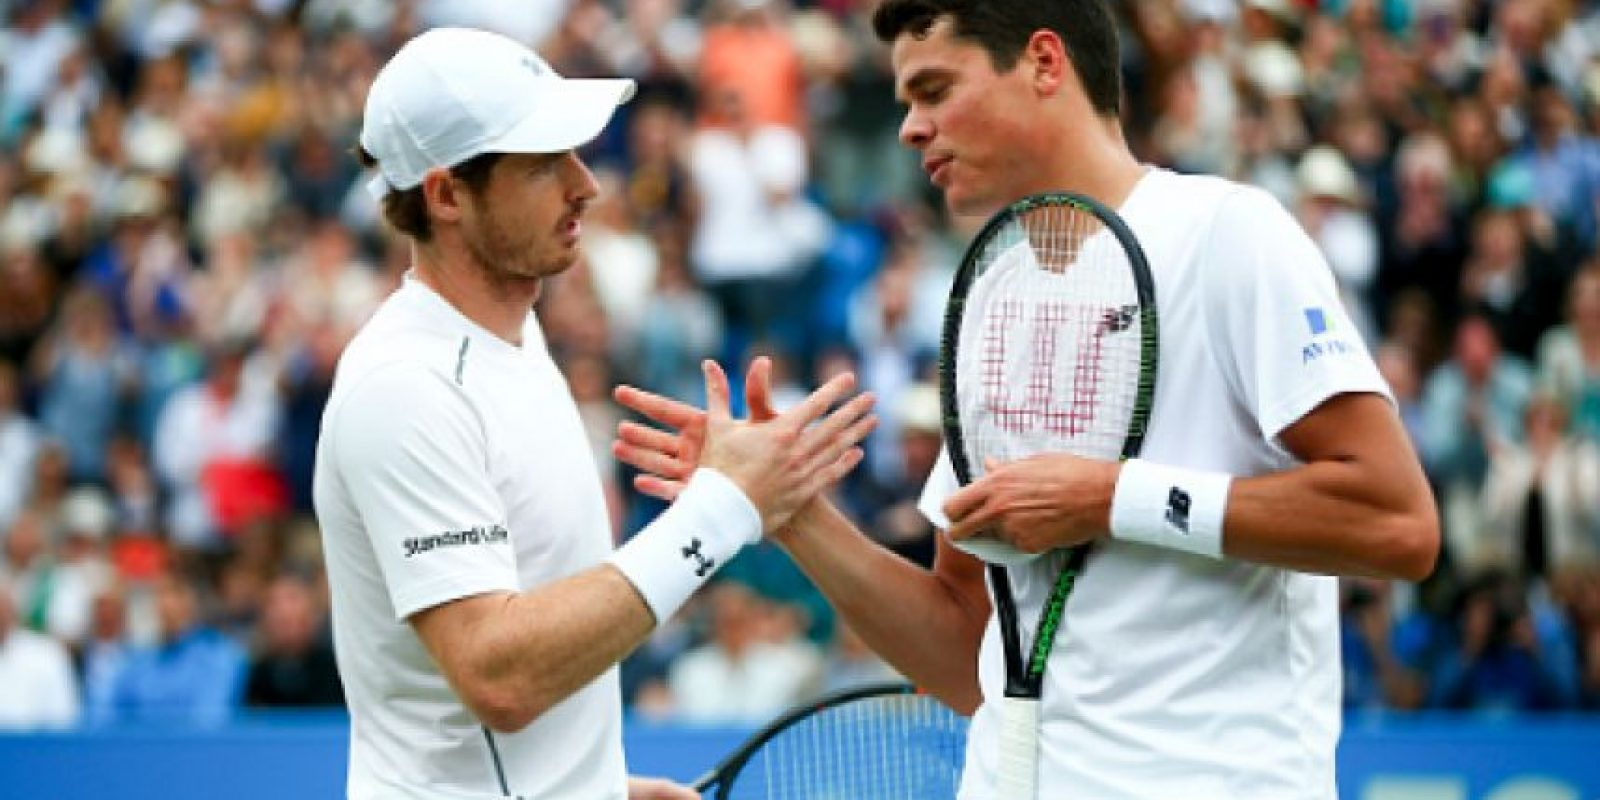 Lista la Final de Wimbledon: Murray ante Raonic Foto: Getty Images